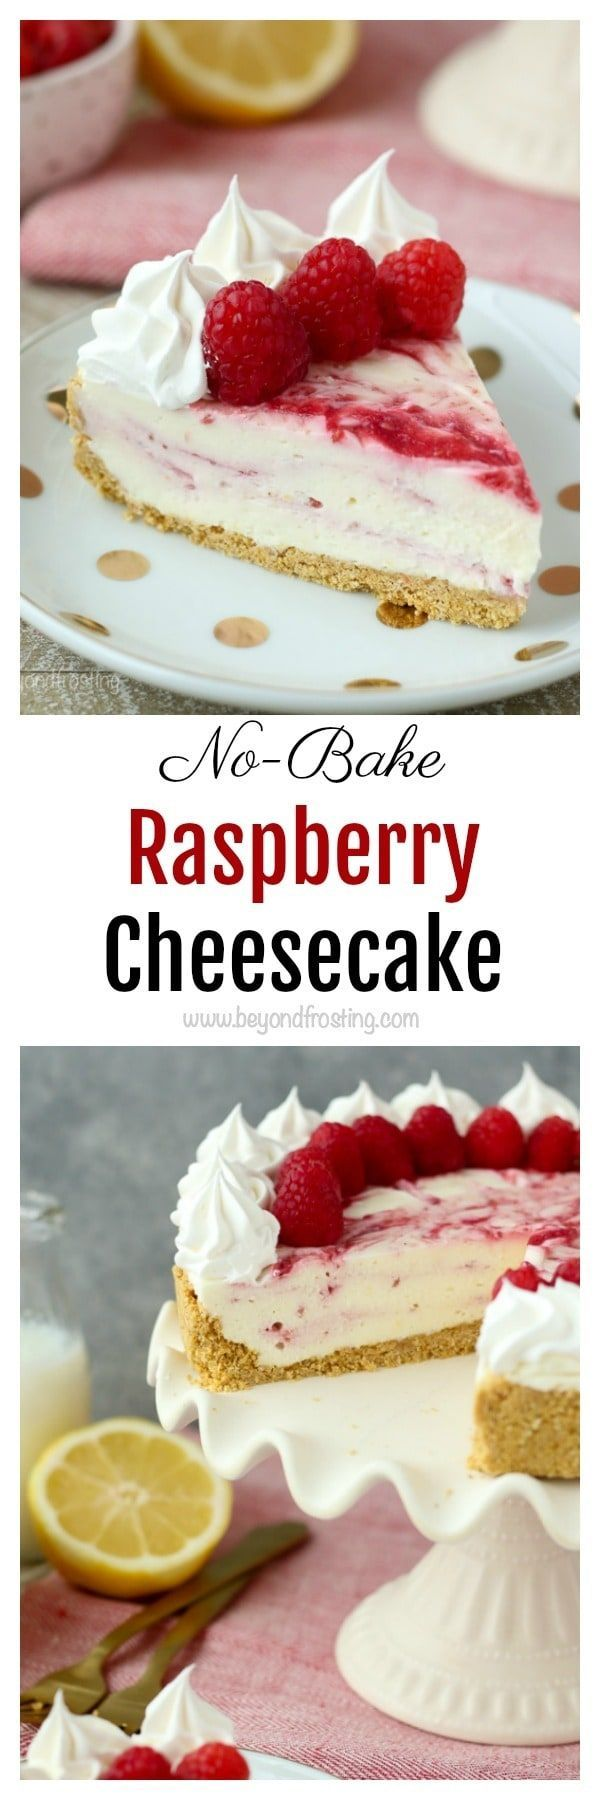 This is an easy and perfect summer dessert! The No-Bake Raspberry Swirl Cheesecake has a buttery graham cracker crust and layers of no-bake cheesecake and a fresh raspberry purée.